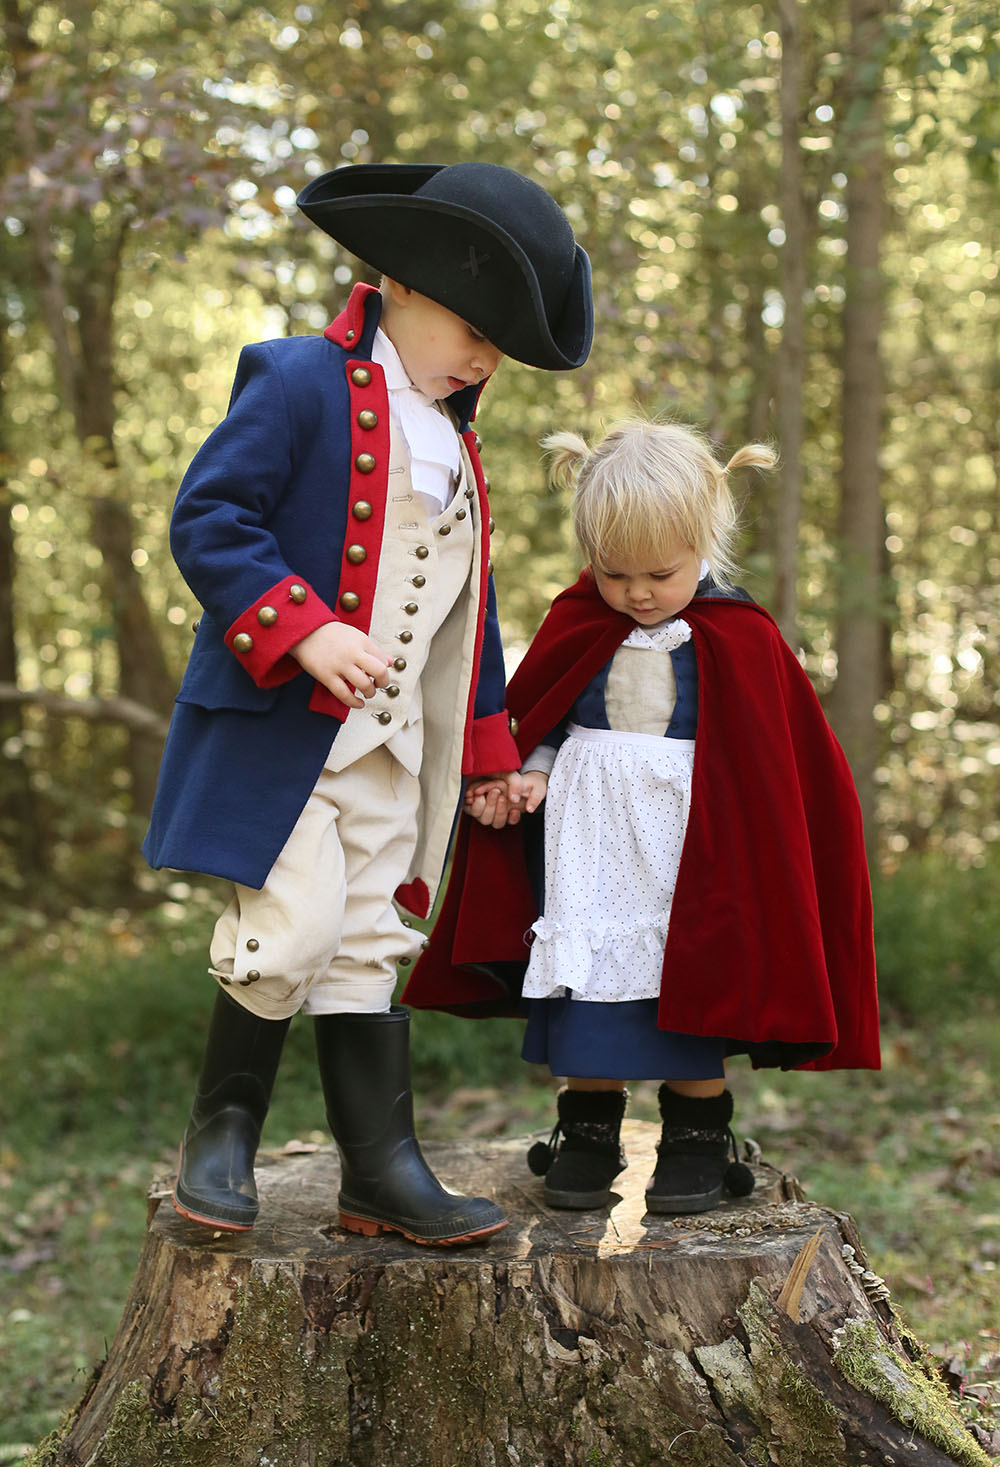 Alexander Hamilton and Little Red Riding Hood